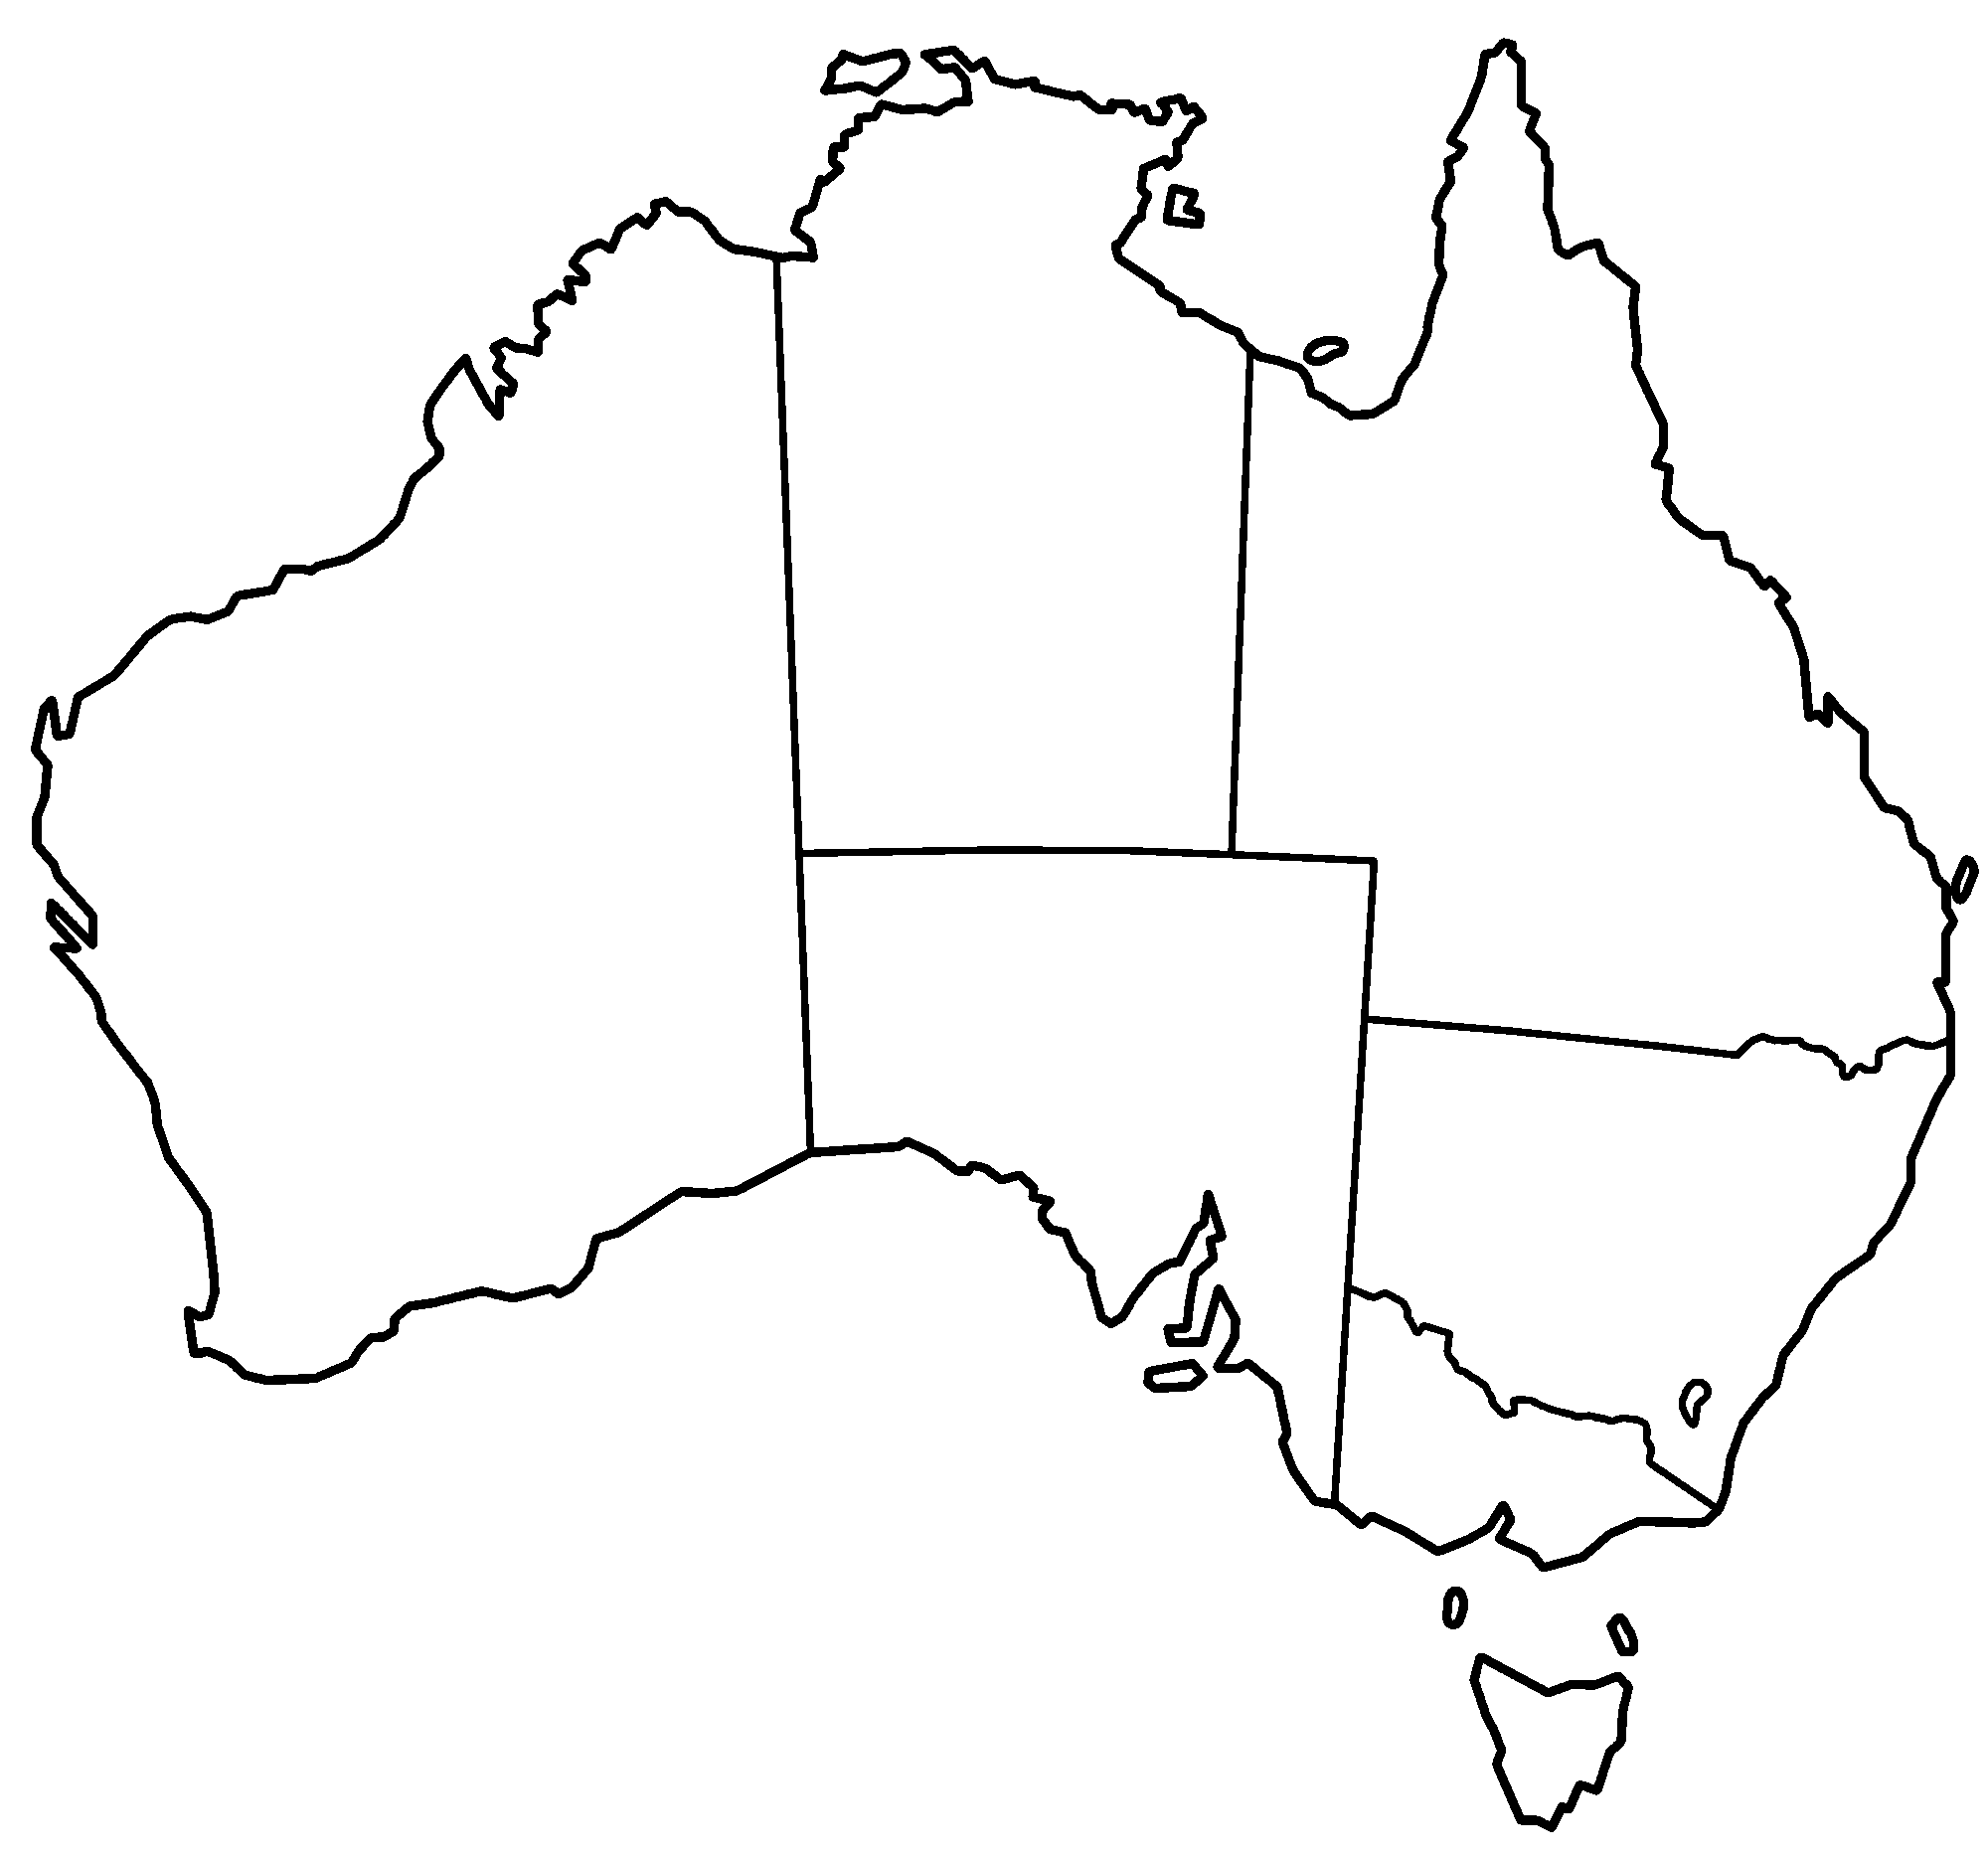 china map outline png